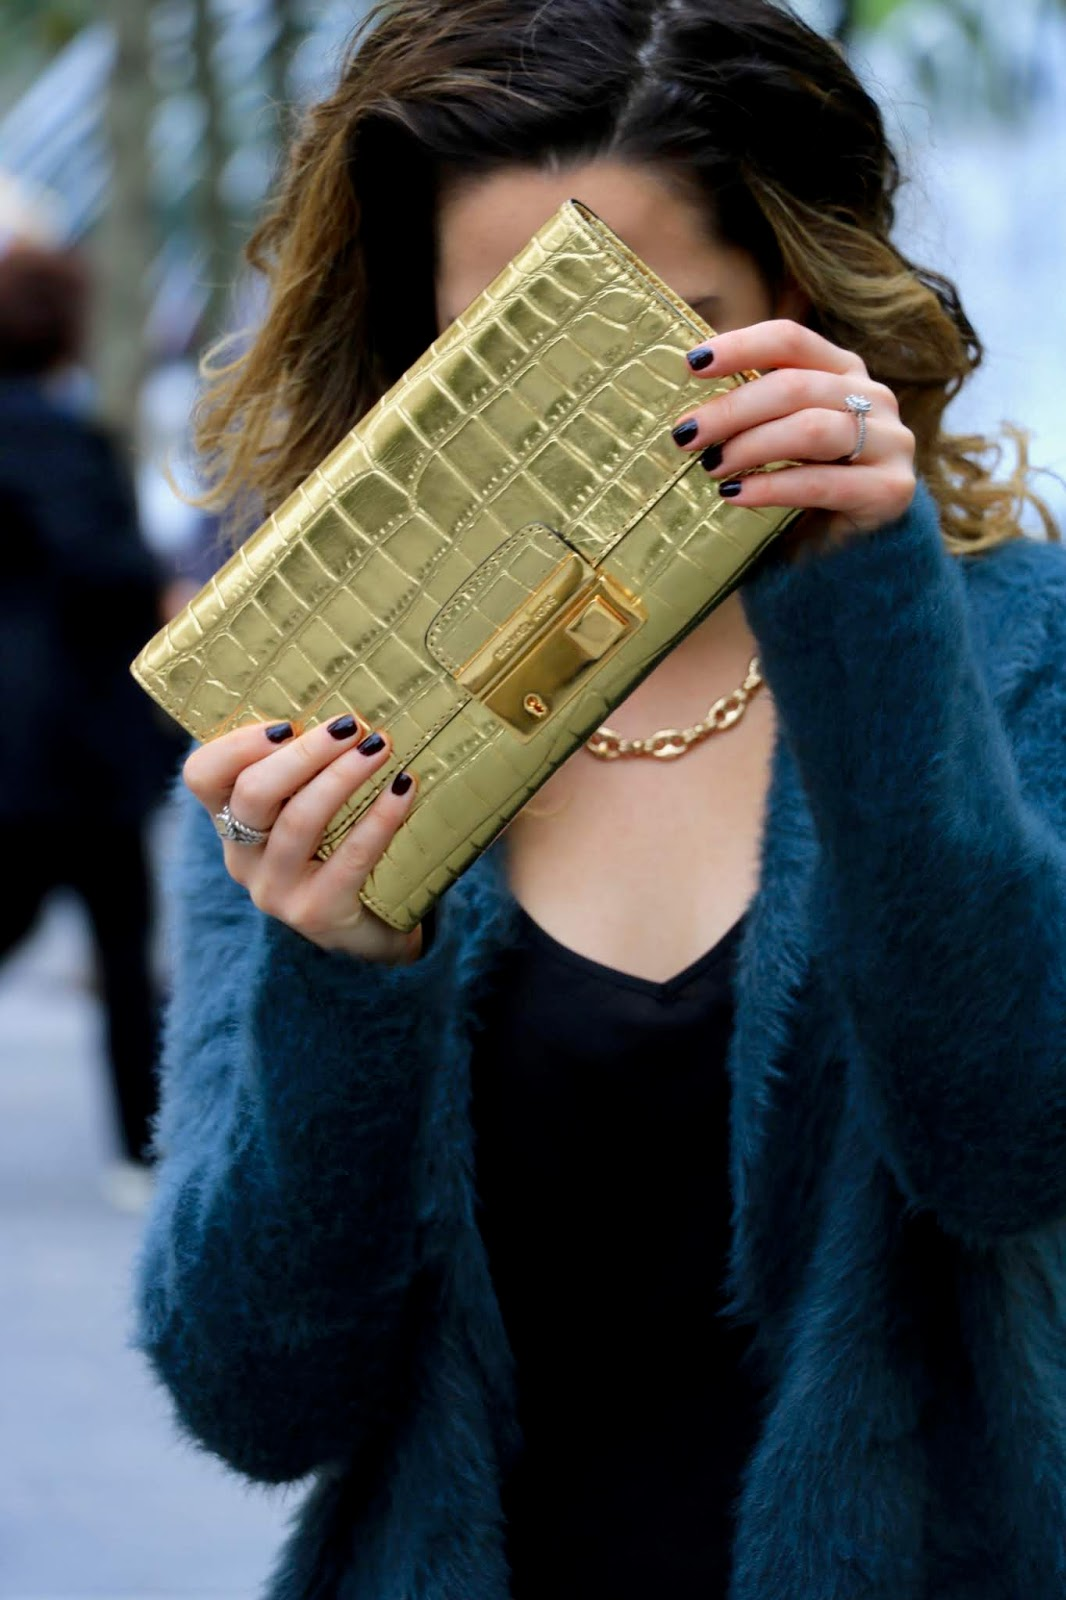 Nyc fashion blogger Kathleen Harper carrying a gold Michael Kors clutch.